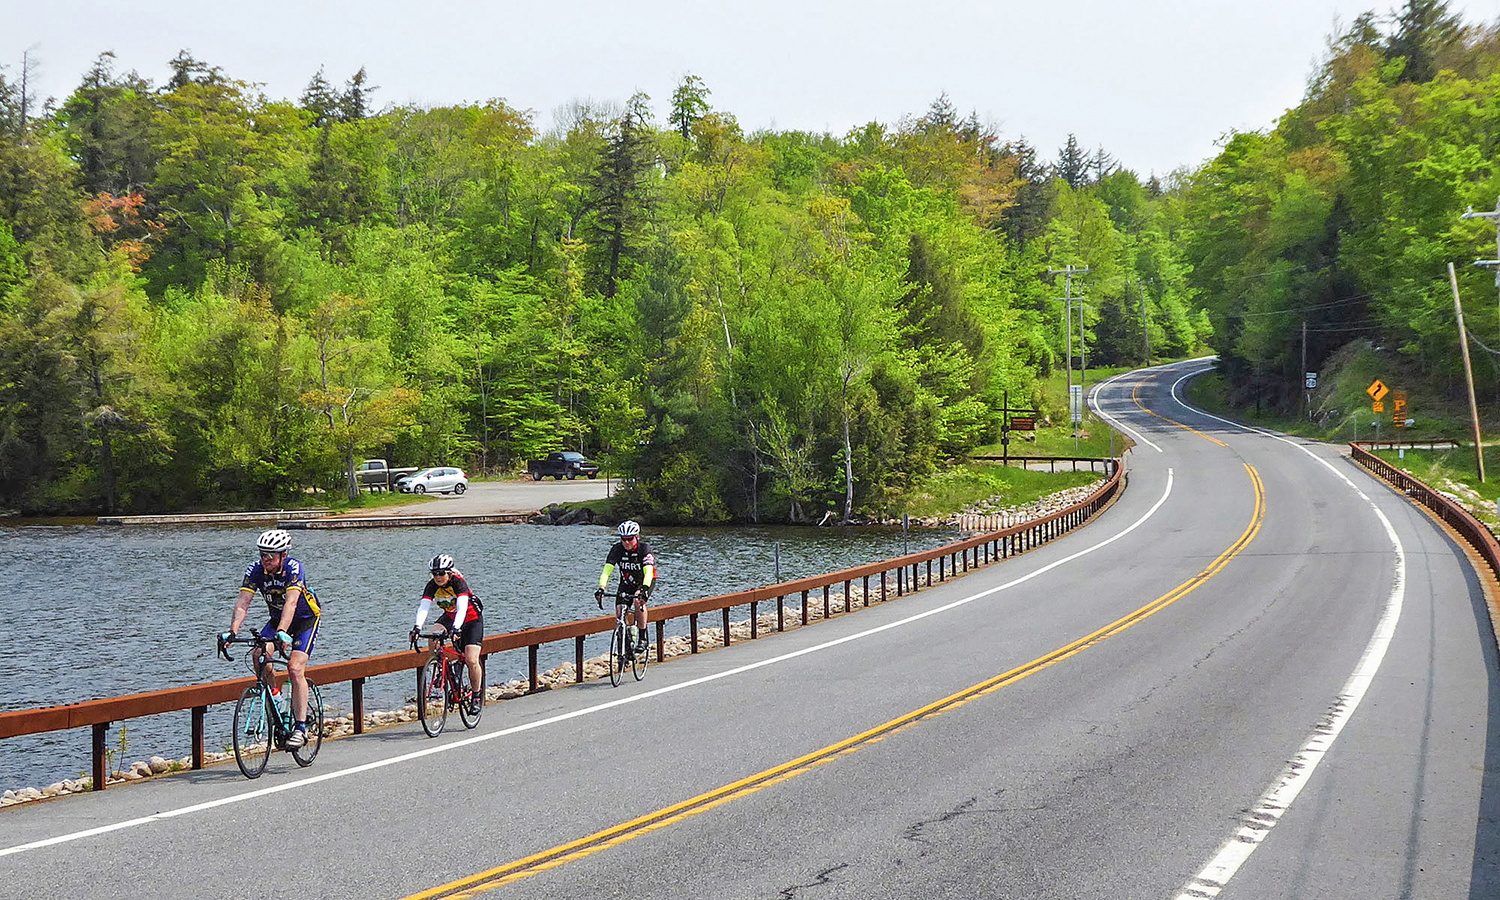 Passing Seventh Lake Boat Launch on Route 28: Mark Lurz of Clifton Park, Elayne Livote of Saratoga Springs, and Brian Stratton of Latham.  Dave Kraus/   KrausGrafik.com